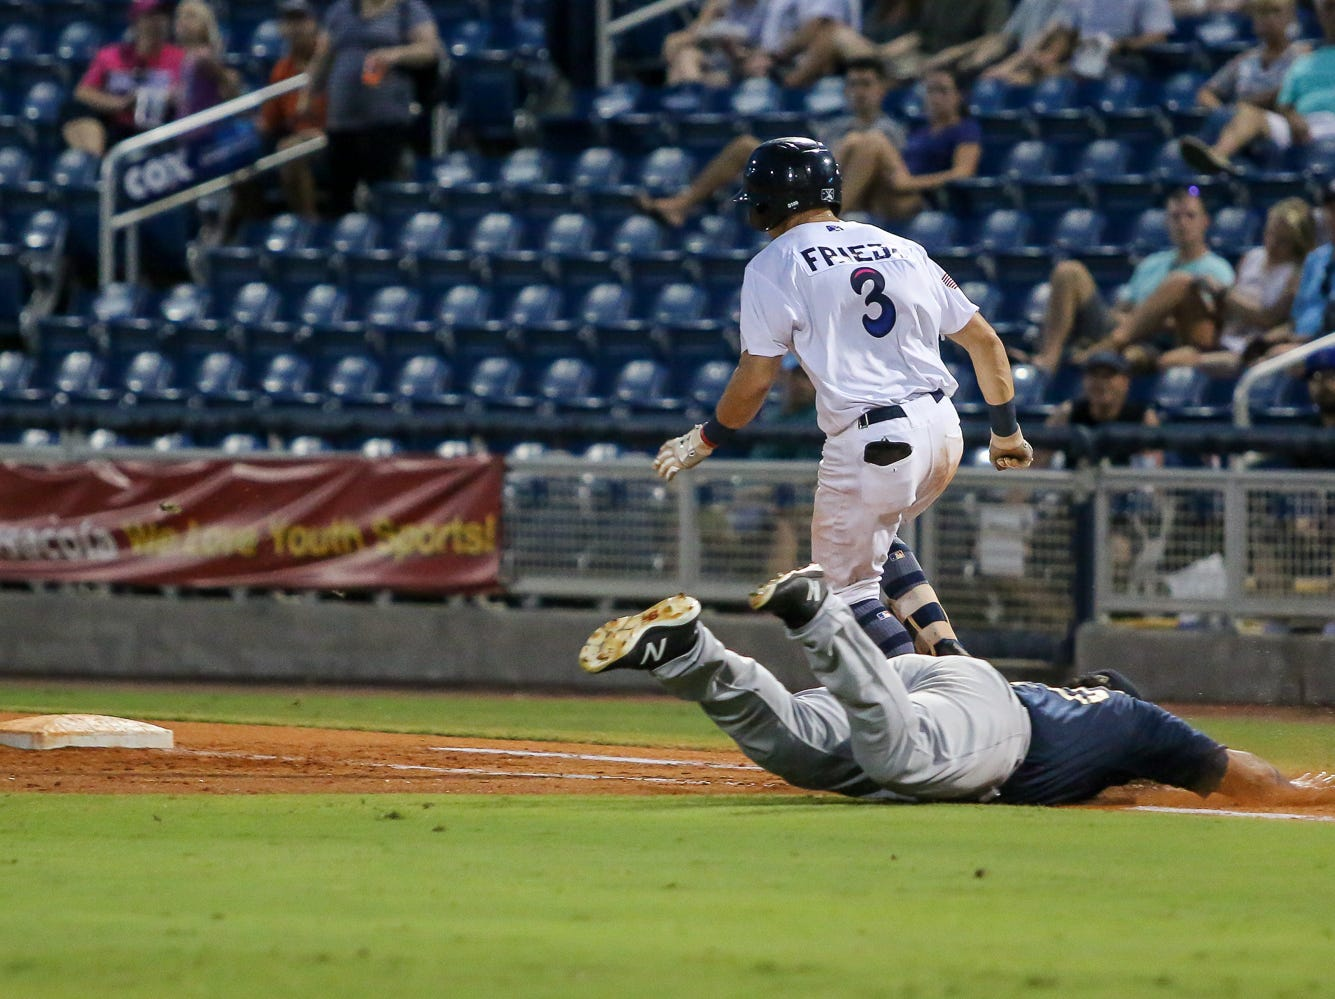 After laying down a bunt, Pensacola's TJ Friedl (3) beats the diving tag by Mobile first baseman Alexis Olmeda (25) during the Blue Wahoos' last home game of the regular season on Tuesday, August 28, 2018.